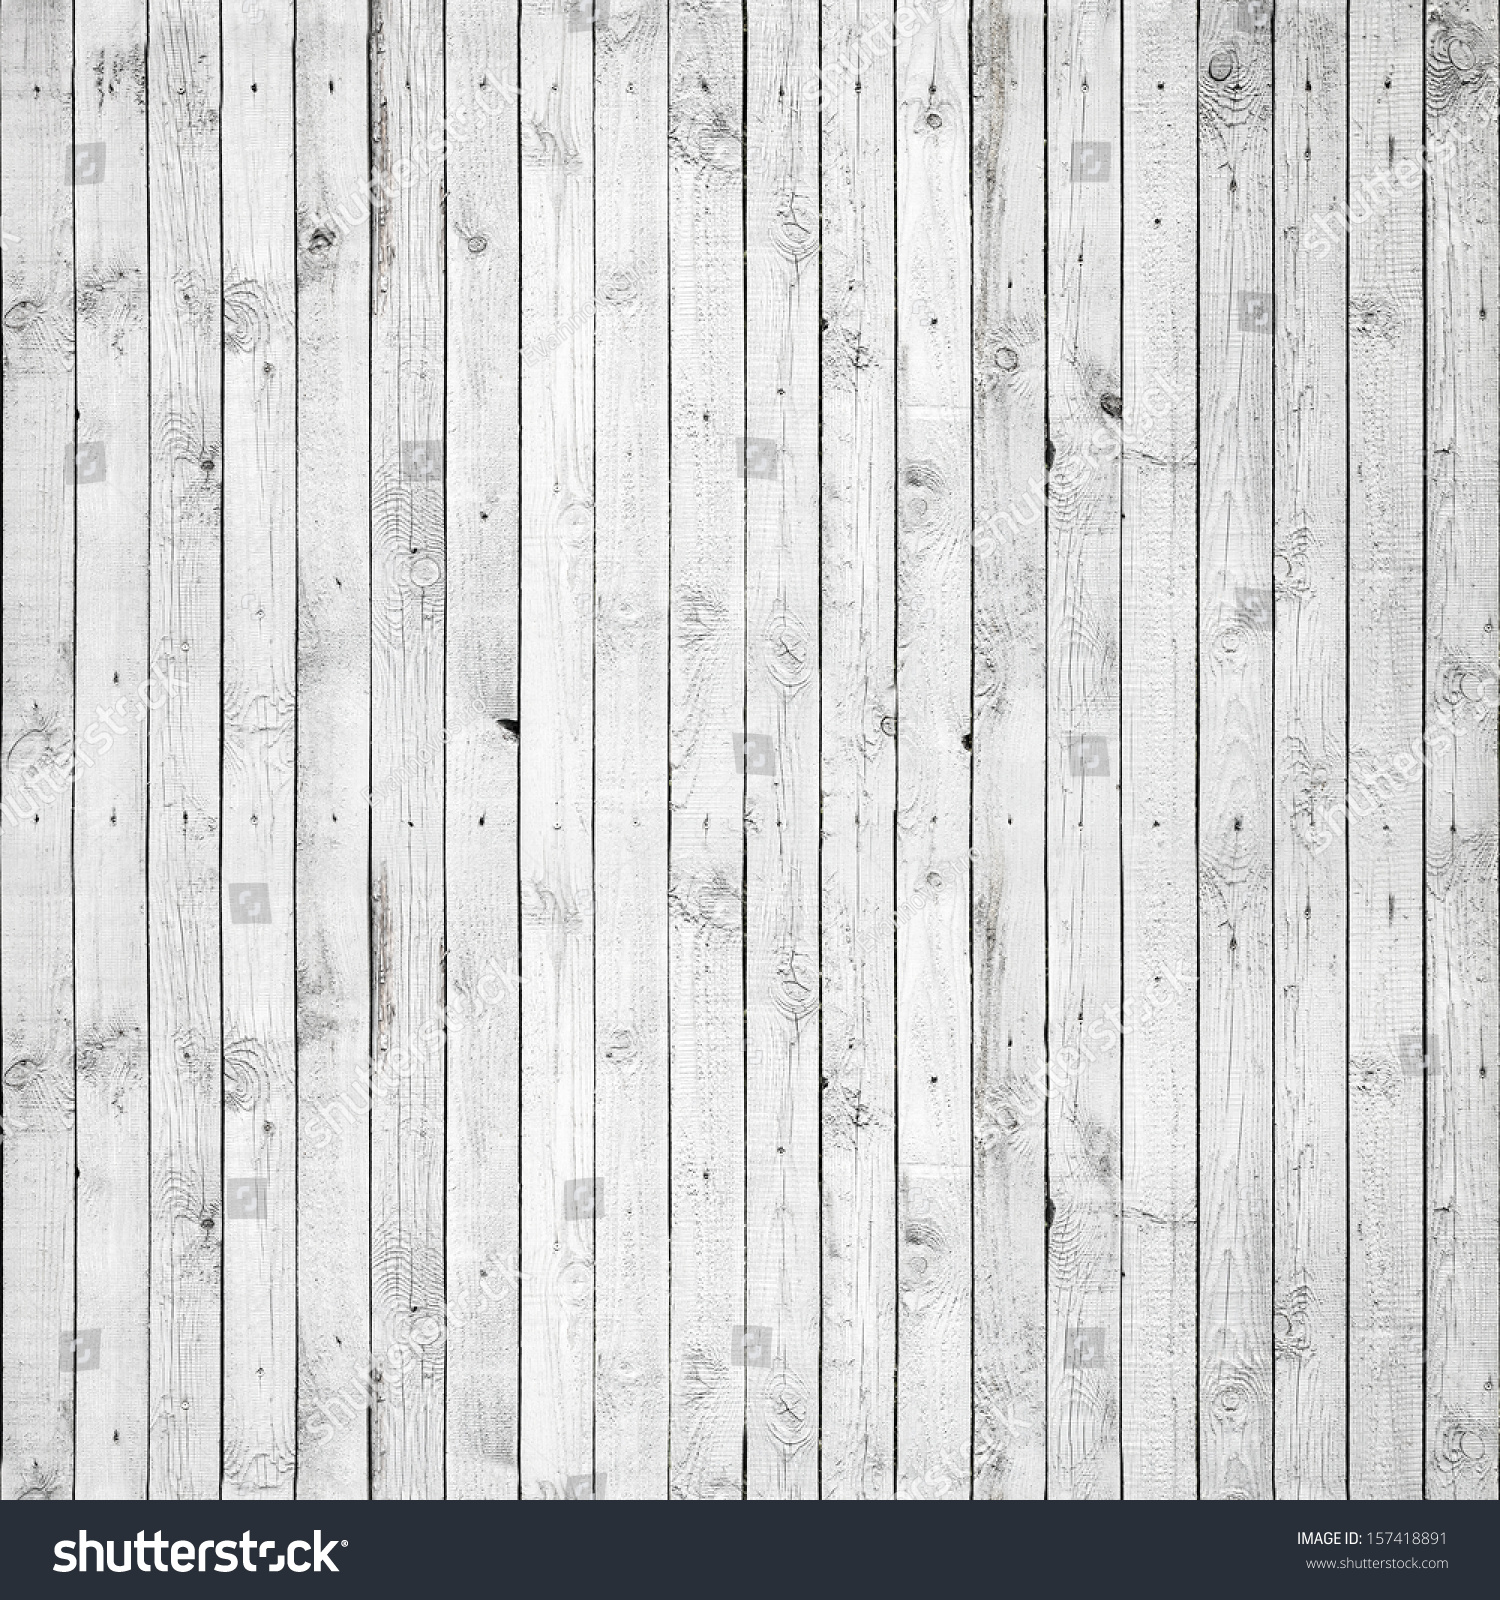 seamless background texture old white painted stock photo 157418891 shutterstock. Black Bedroom Furniture Sets. Home Design Ideas